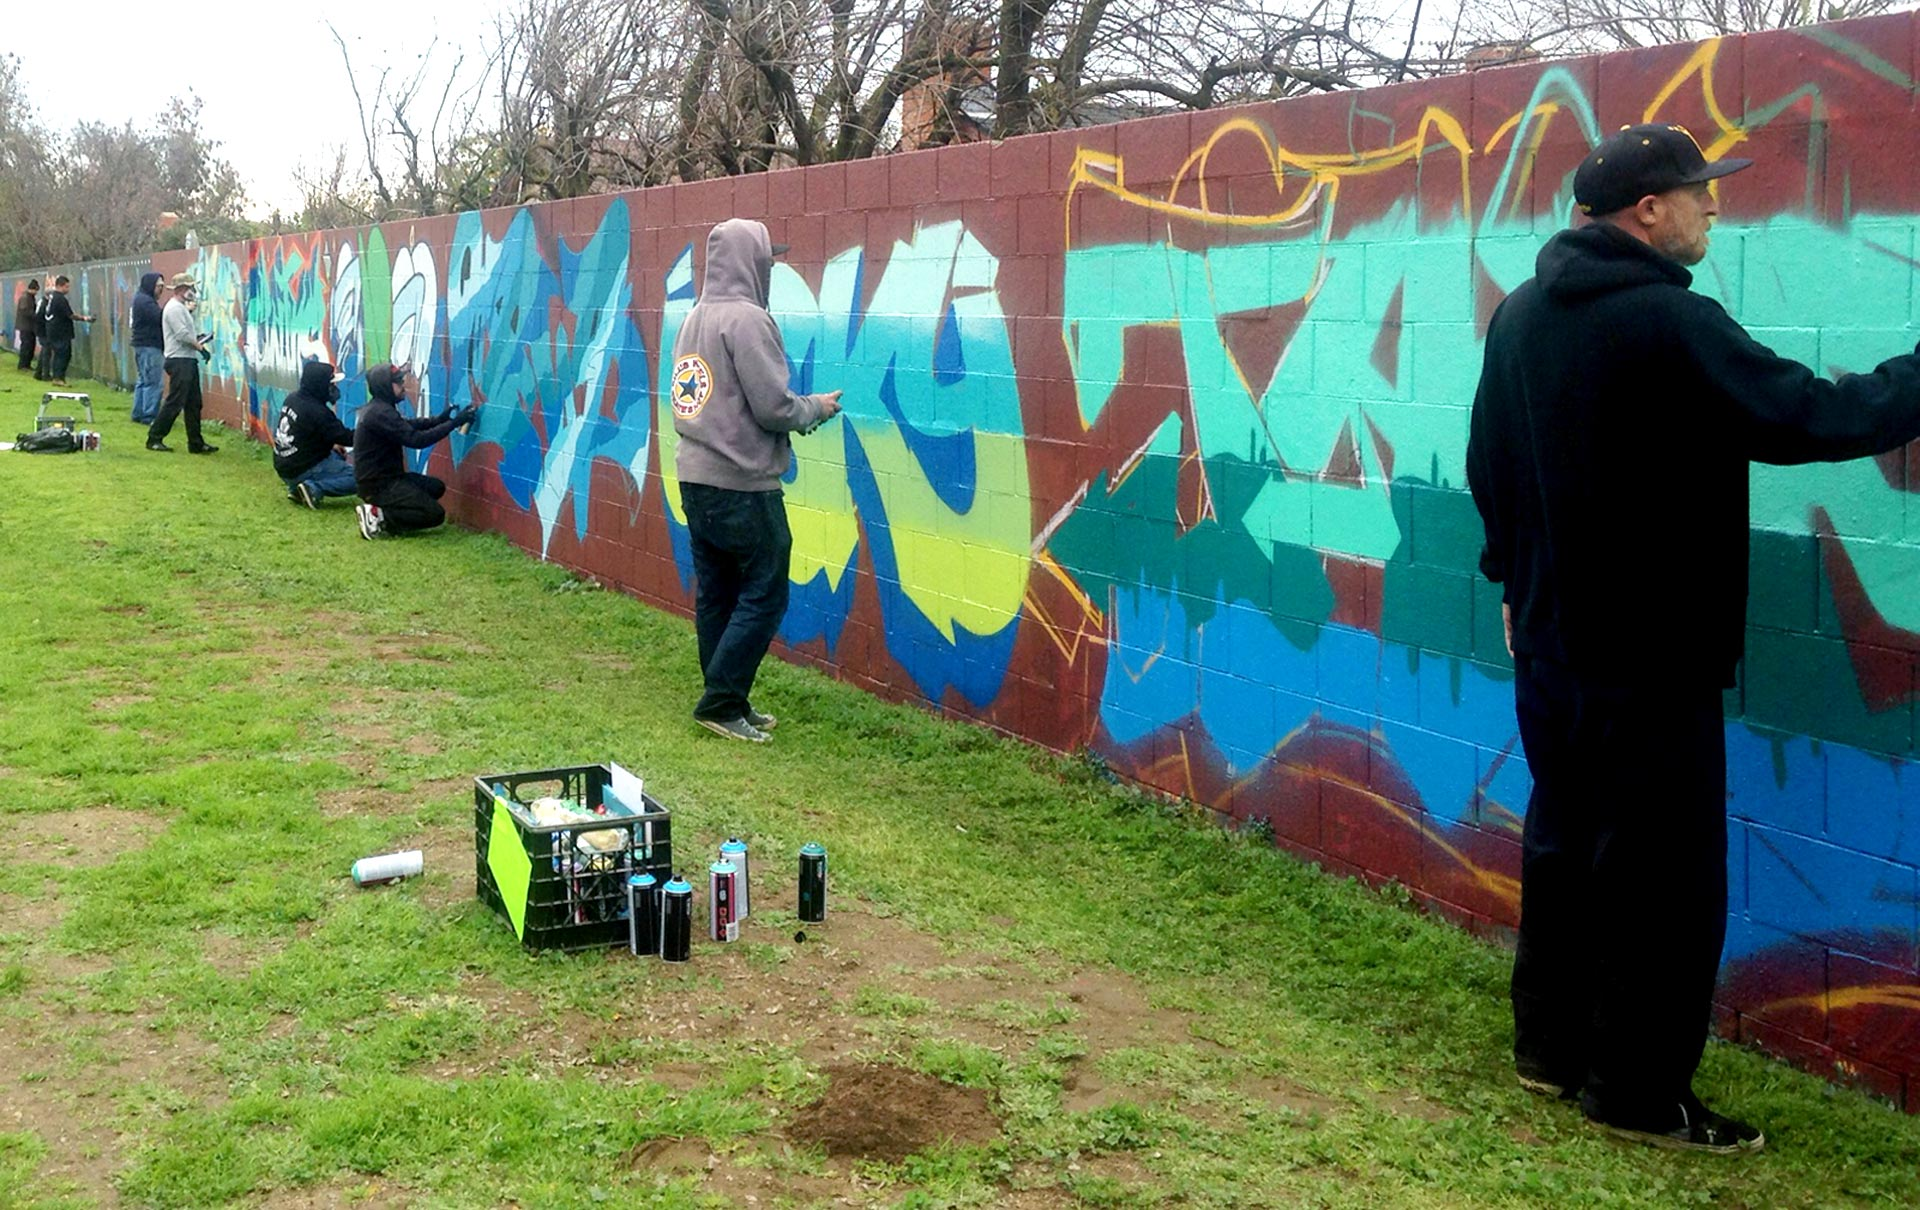 A crew of graffiti artists called Lords paint a quarter-mile-long wall to pay homage to their founder, Bizare.